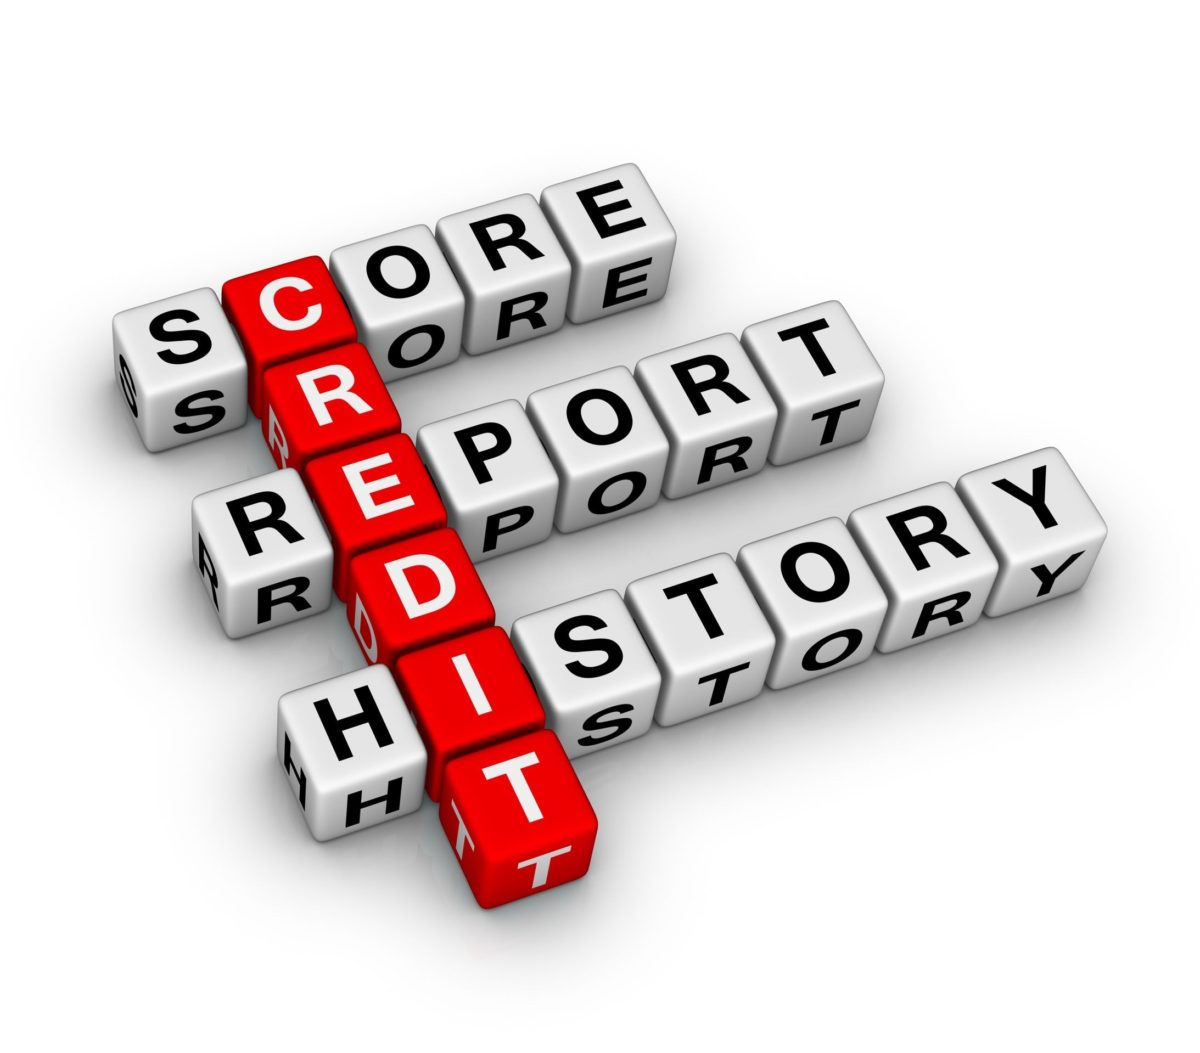 Credit Card 101: How to get free credit reports and scores?